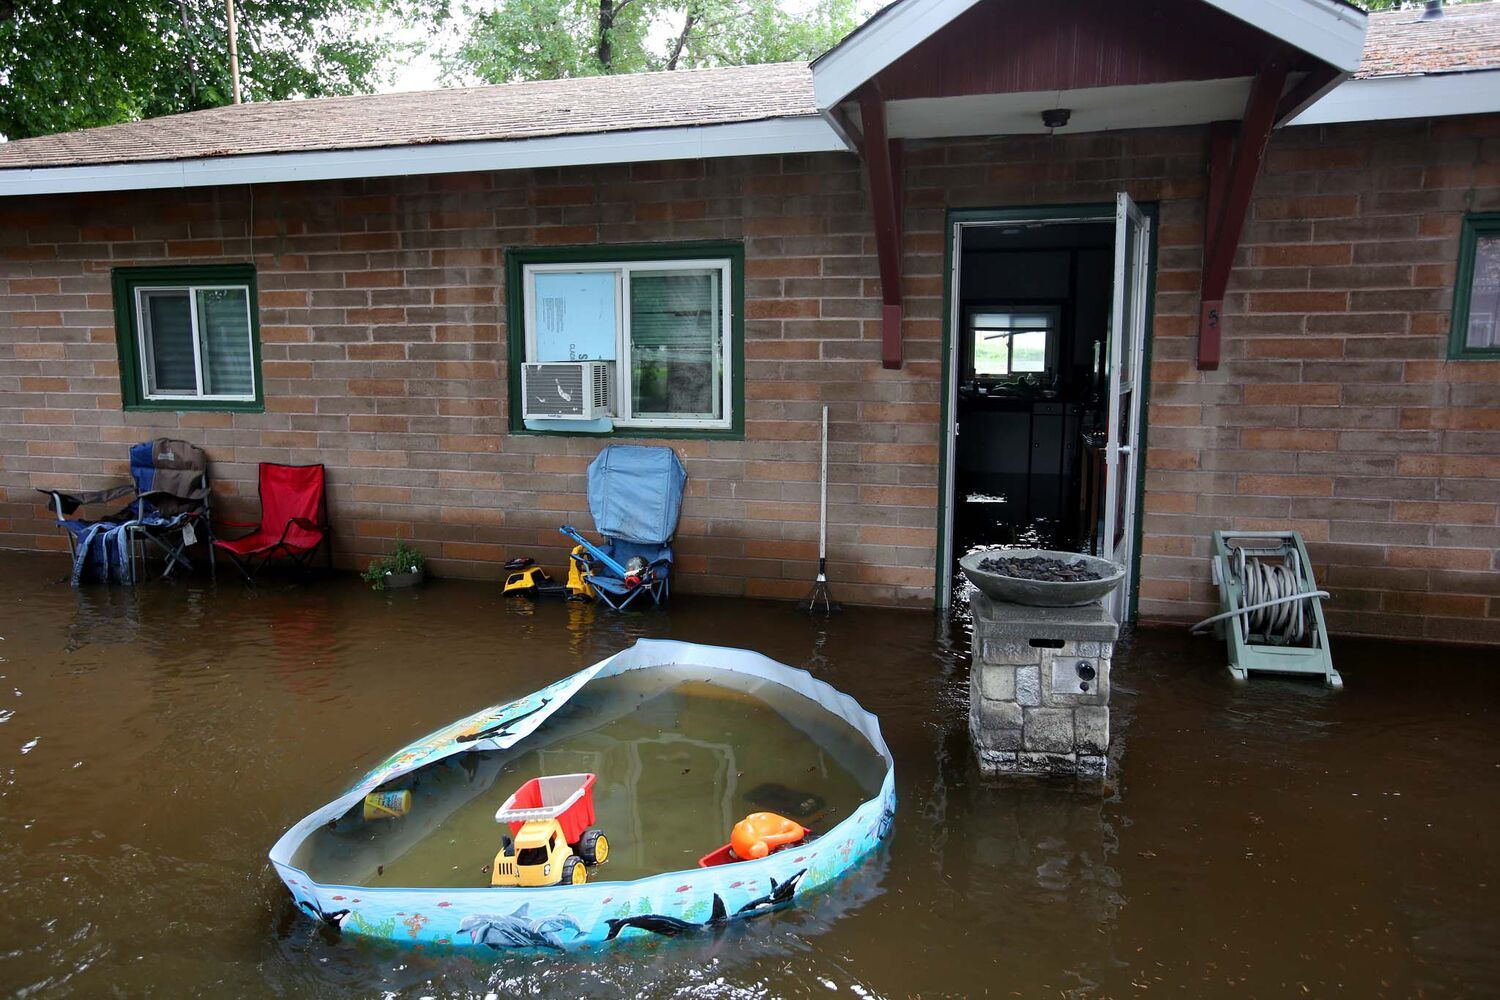 Apartments in Virden sit surrounded by water on Monday after the rising Gopher Creek inundated the homes over the weekend, forcing the evacuation of residents.  (Tim Smith / Brandon Sun)